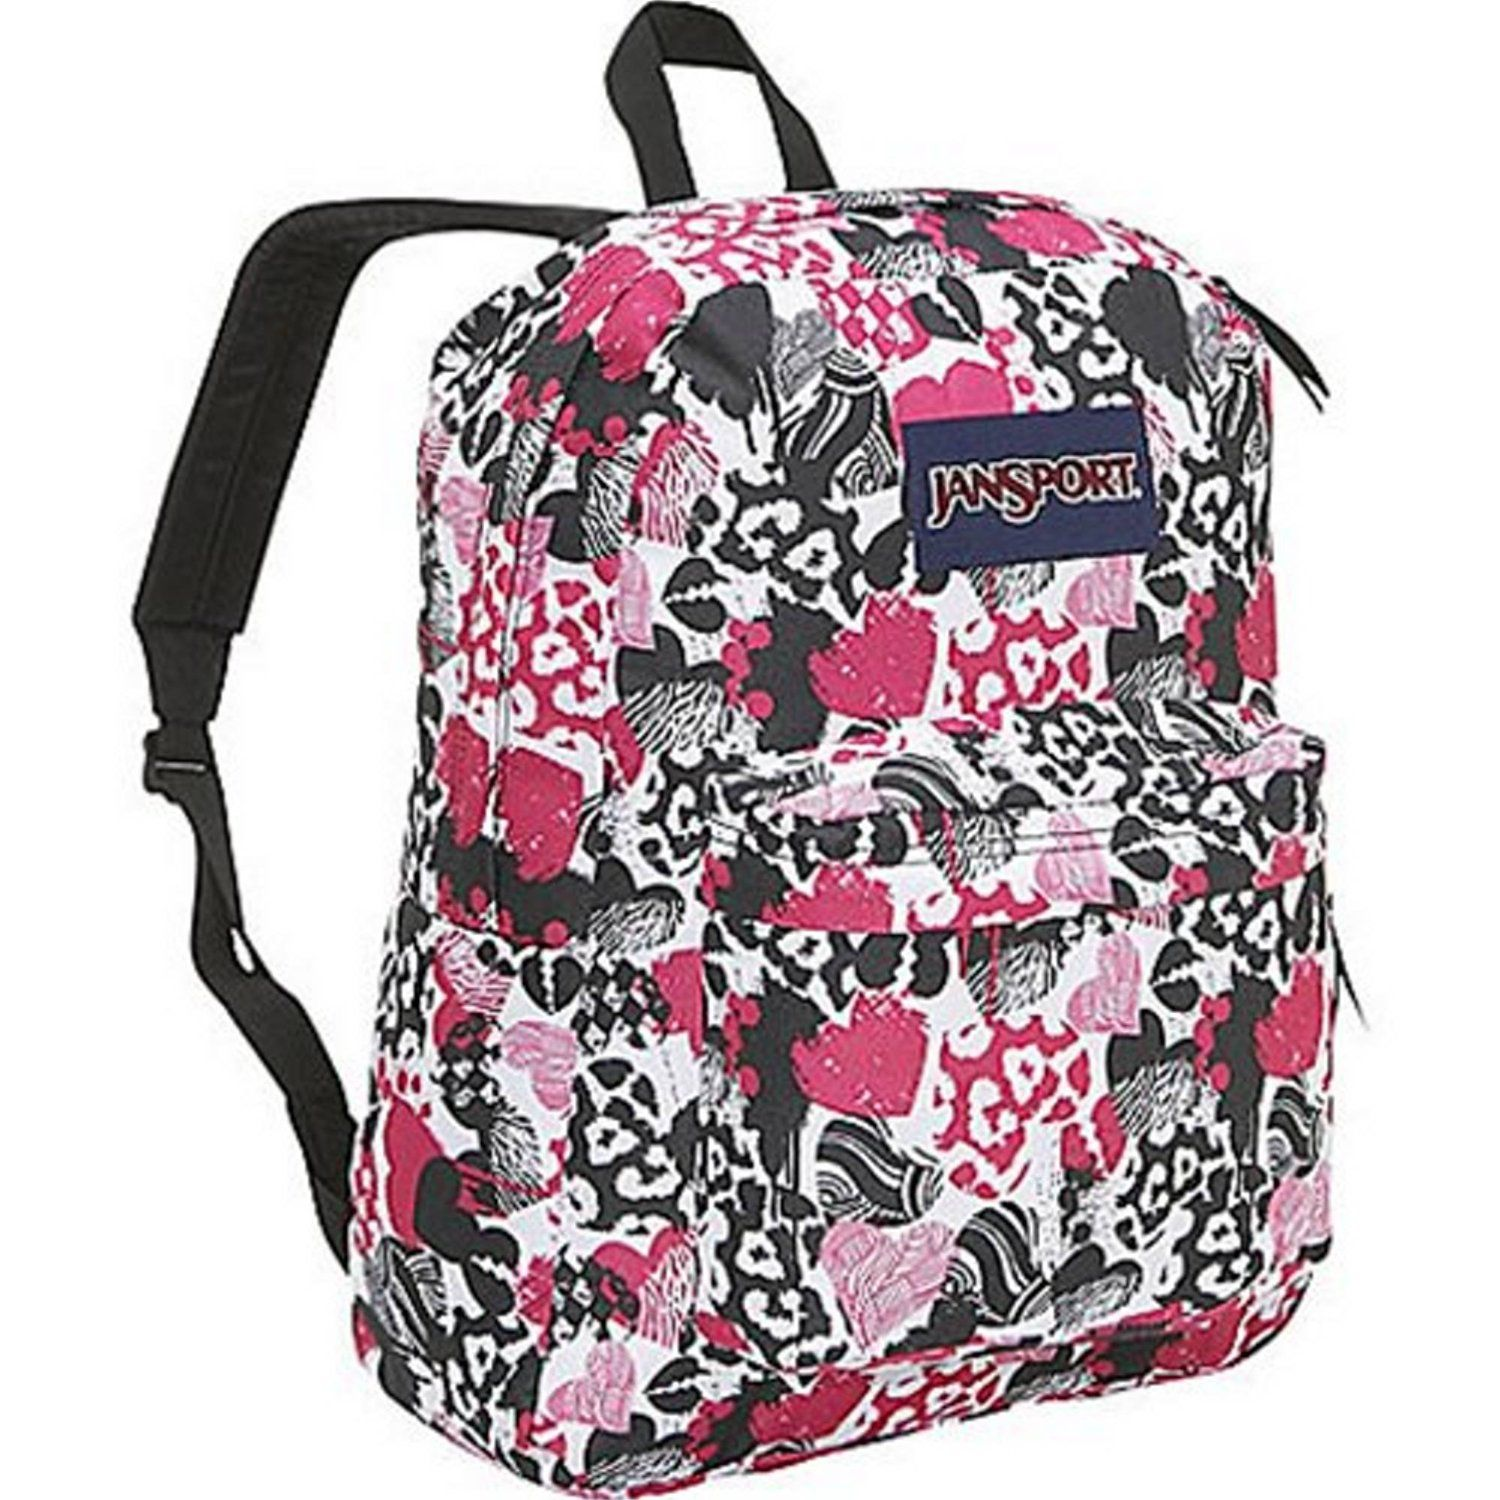 jansport backpacks - Google Search | kk's board | Pinterest ...